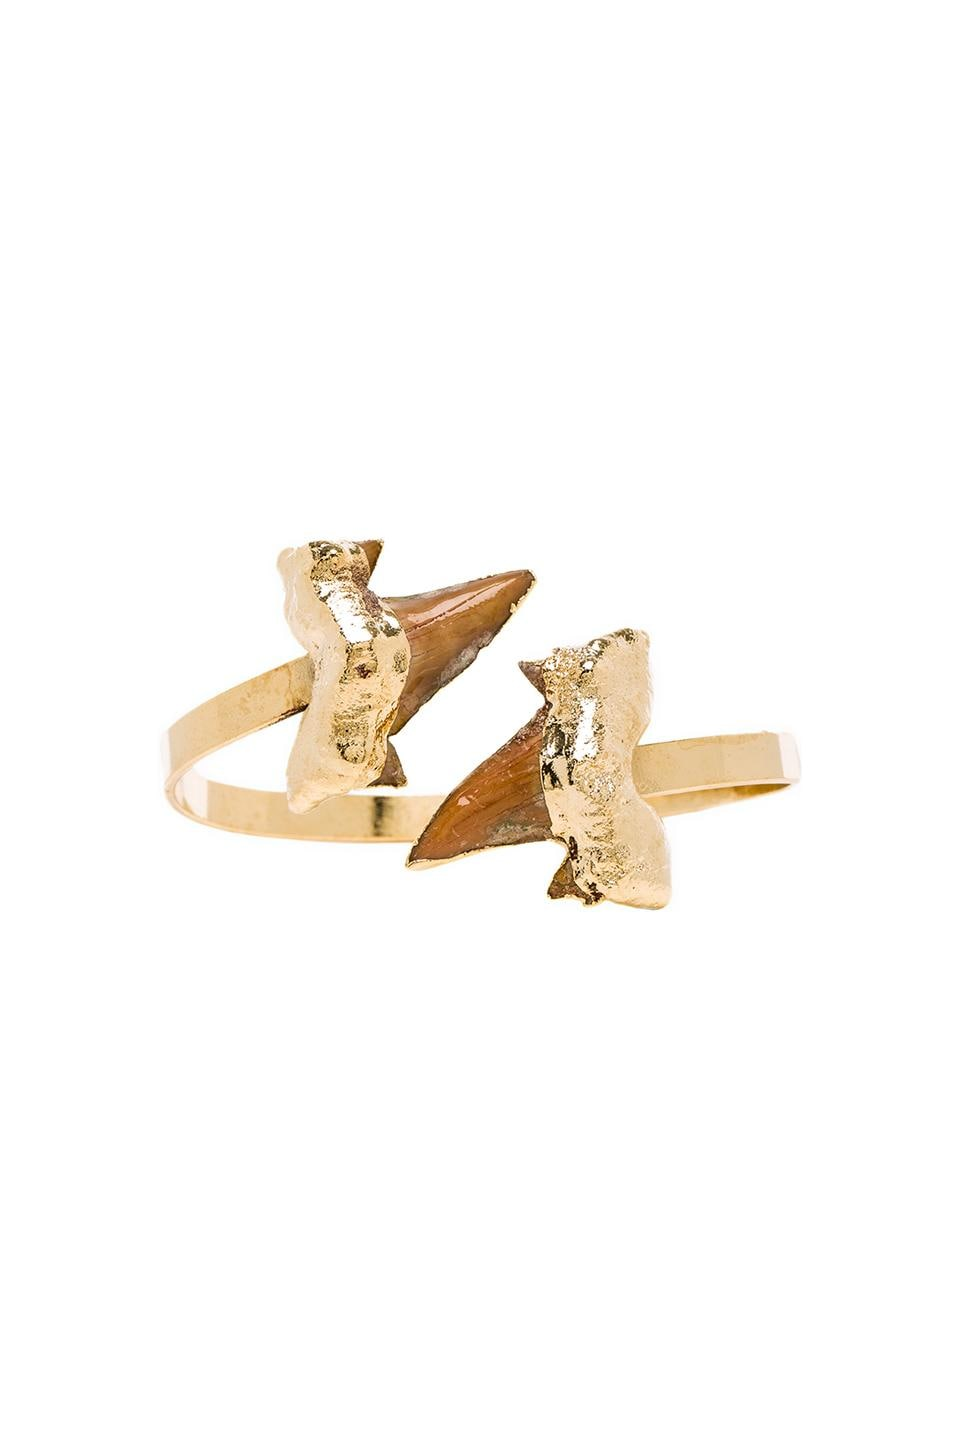 JNB Jaws Cuff in Gold